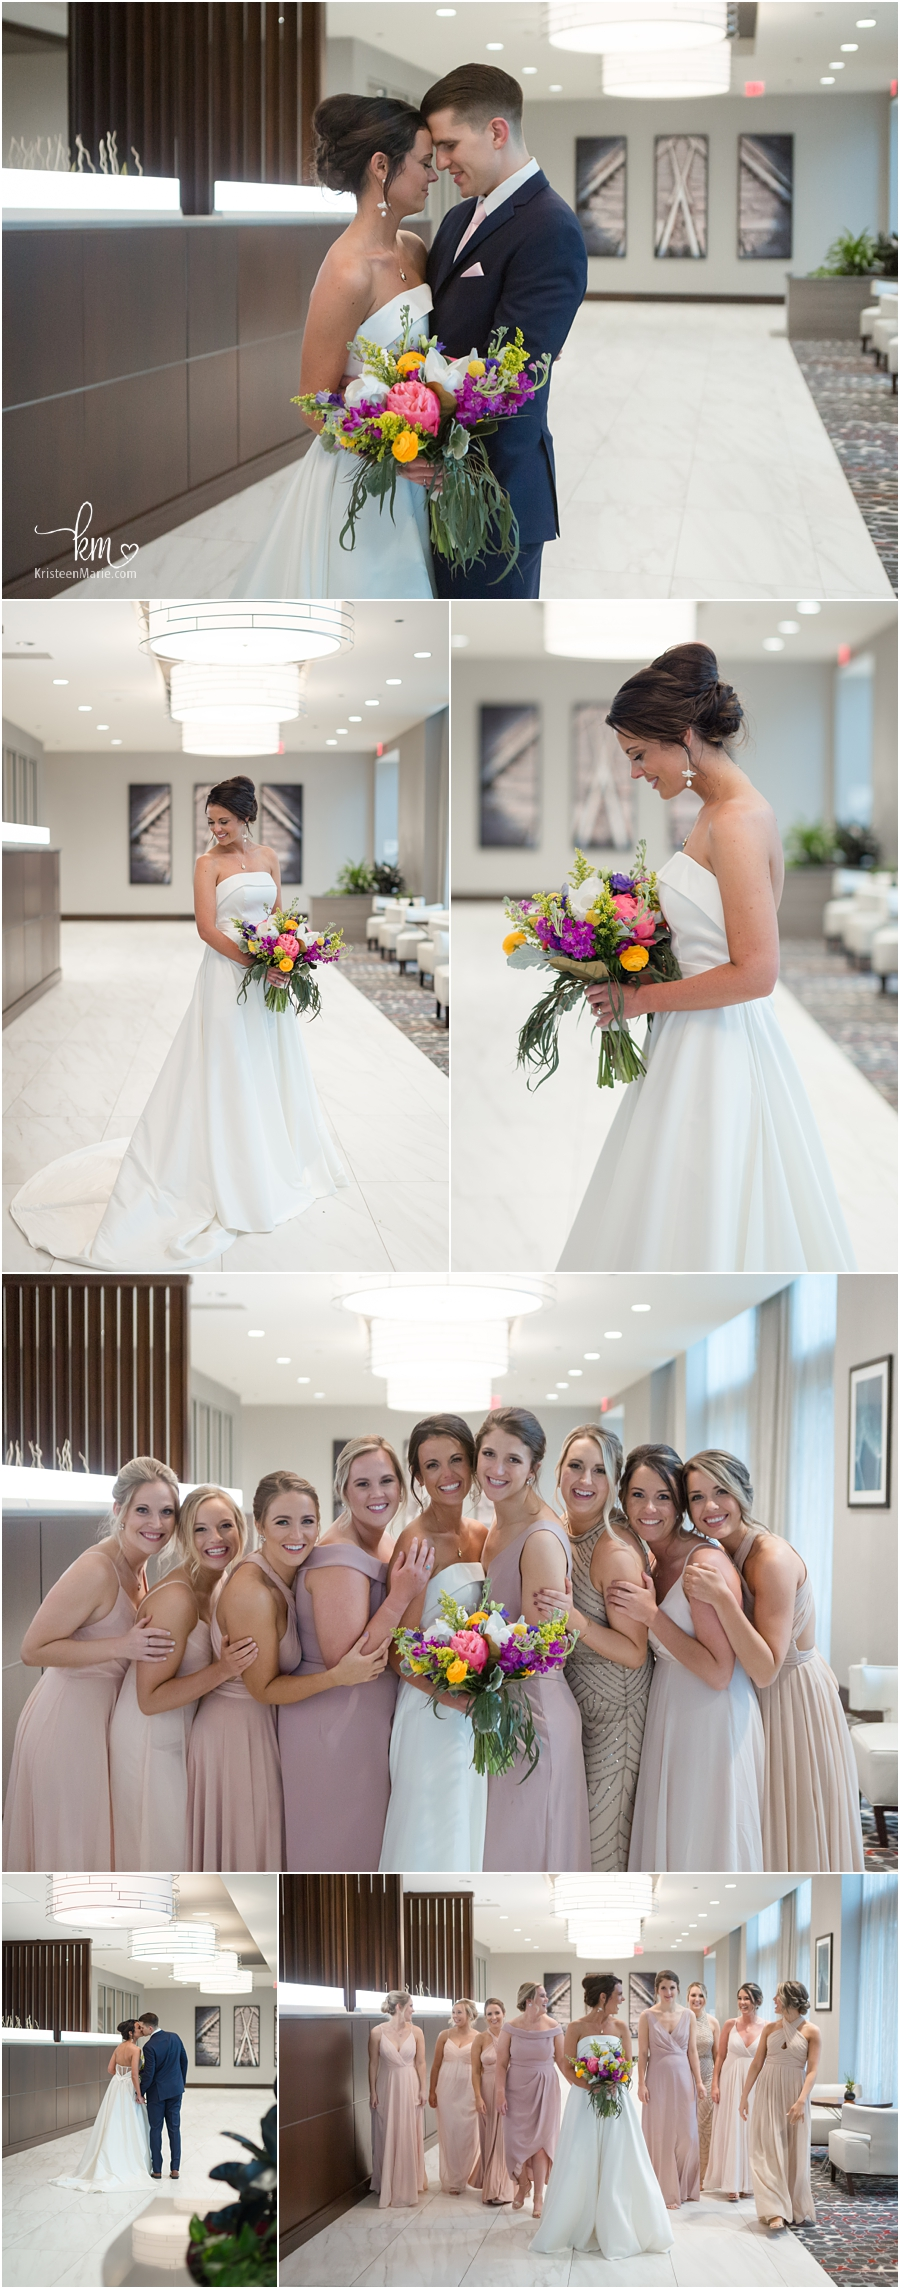 stunning wedding party